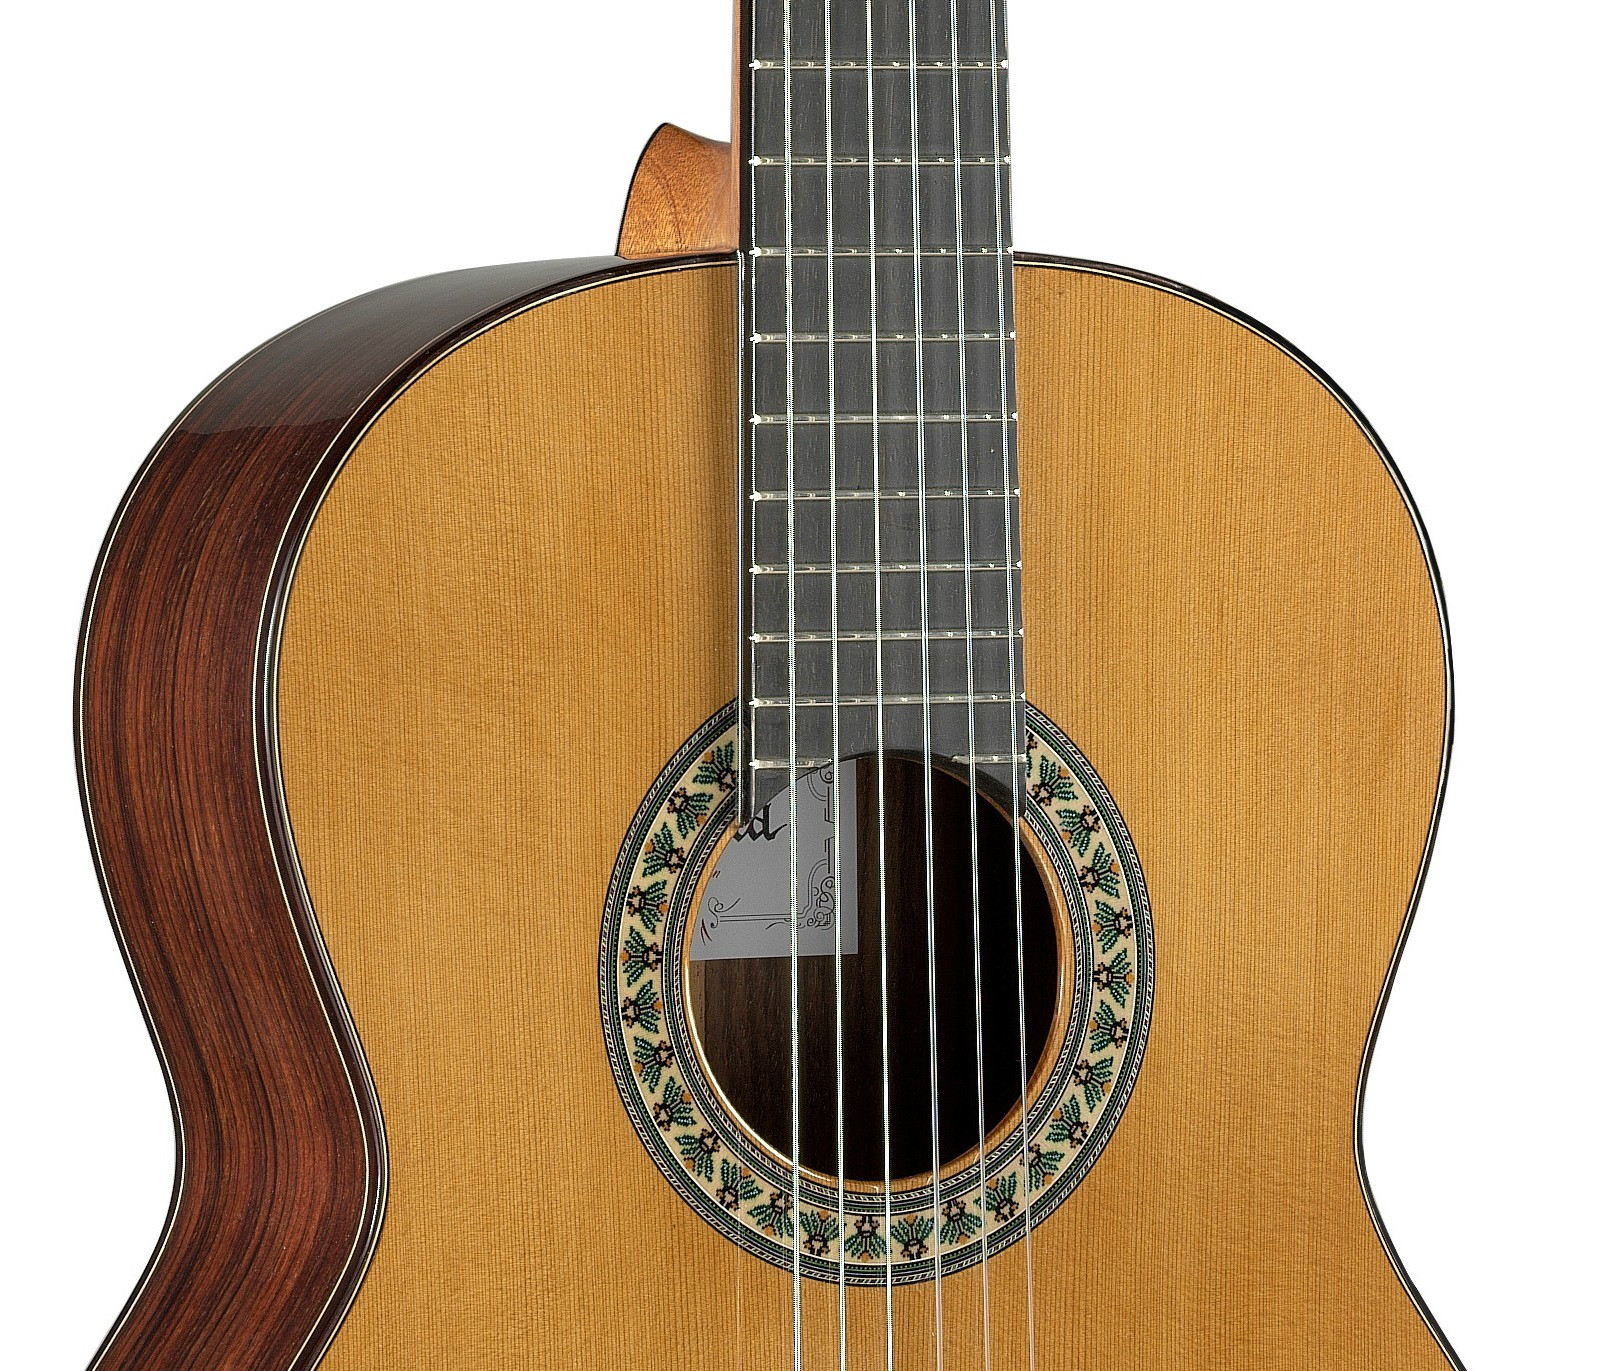 The semiprofessional student range of Alhambra Guitars